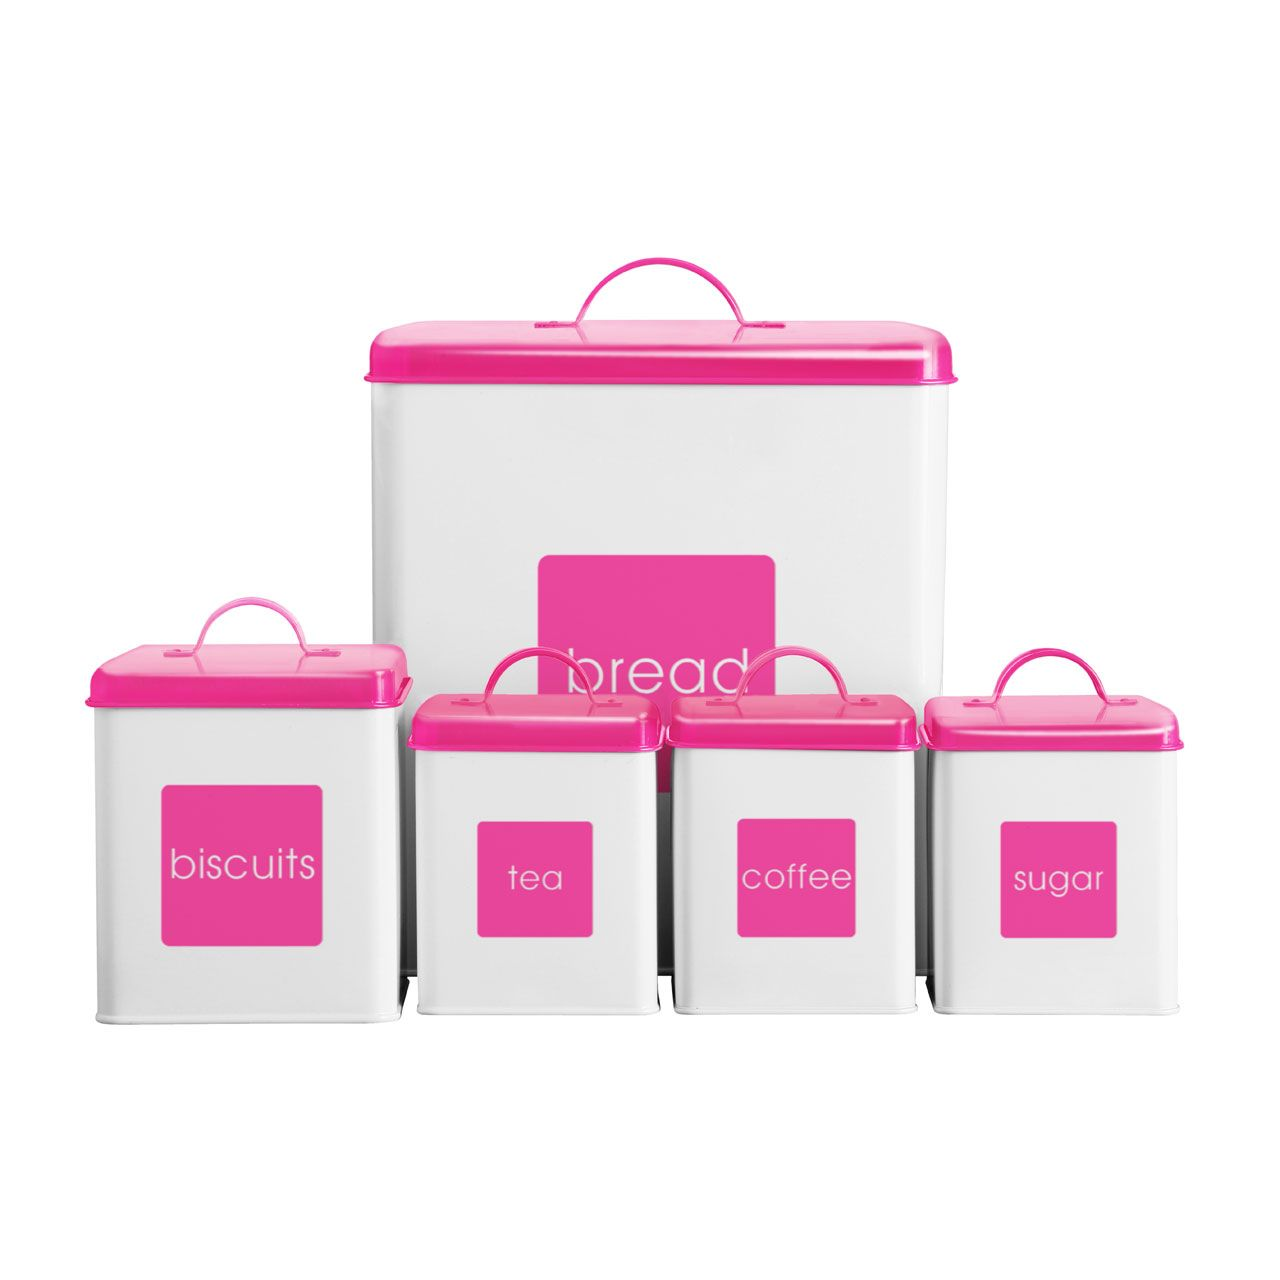 Tea Coffee Sugar Biscuits Bread Bin Hot Pink White Canisters Kitchen